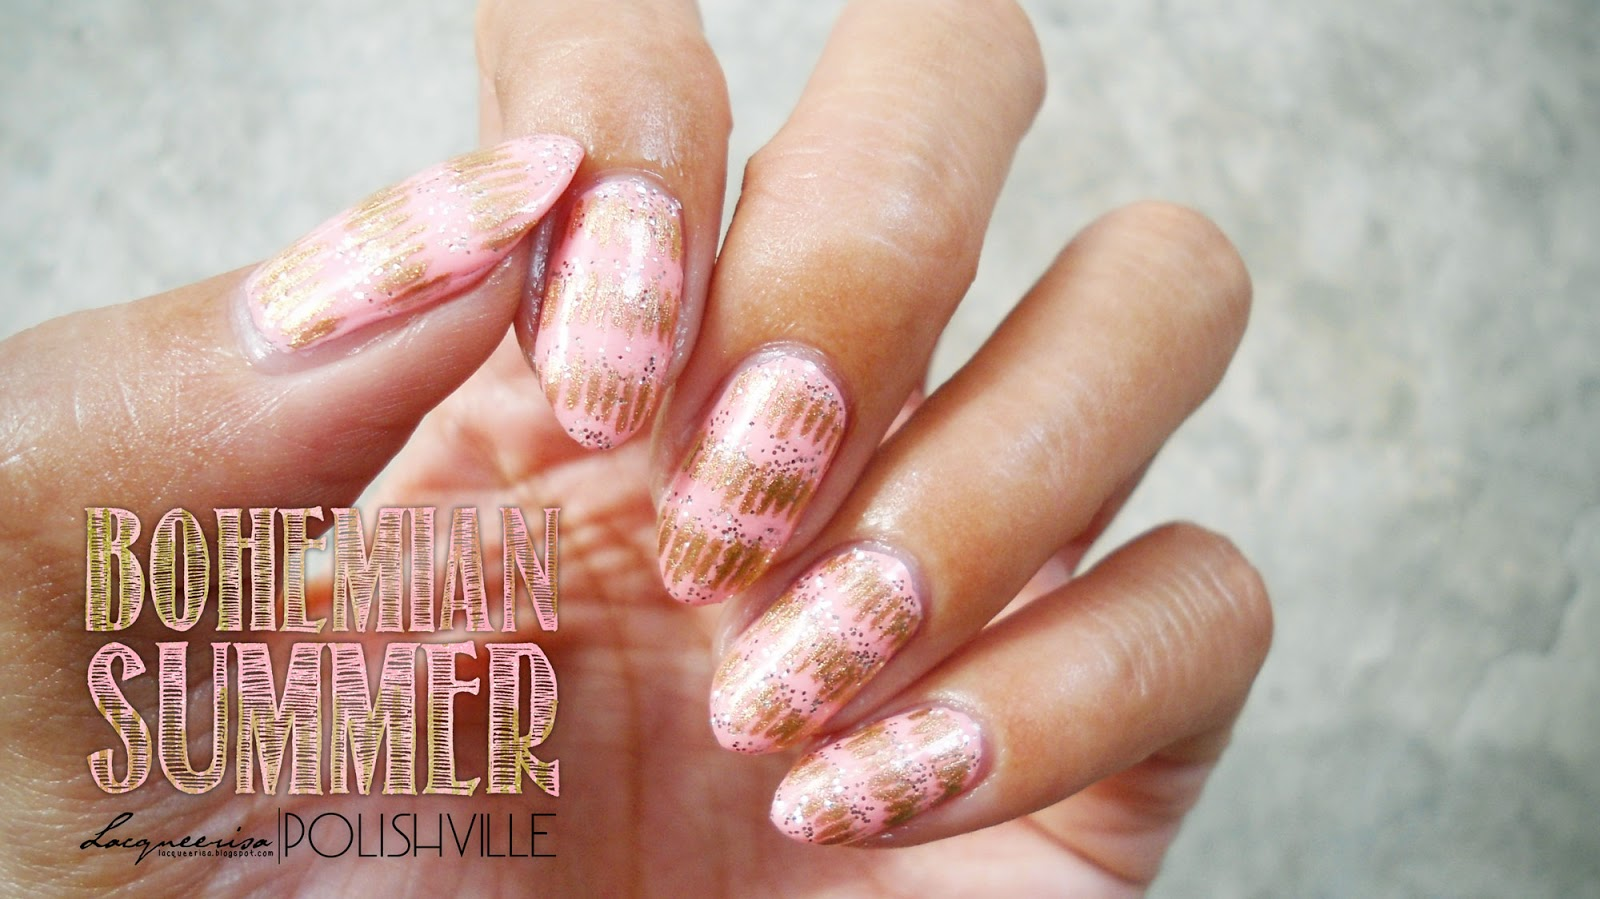 LacqueerisaXPolishville: Bohemian Summer Nails